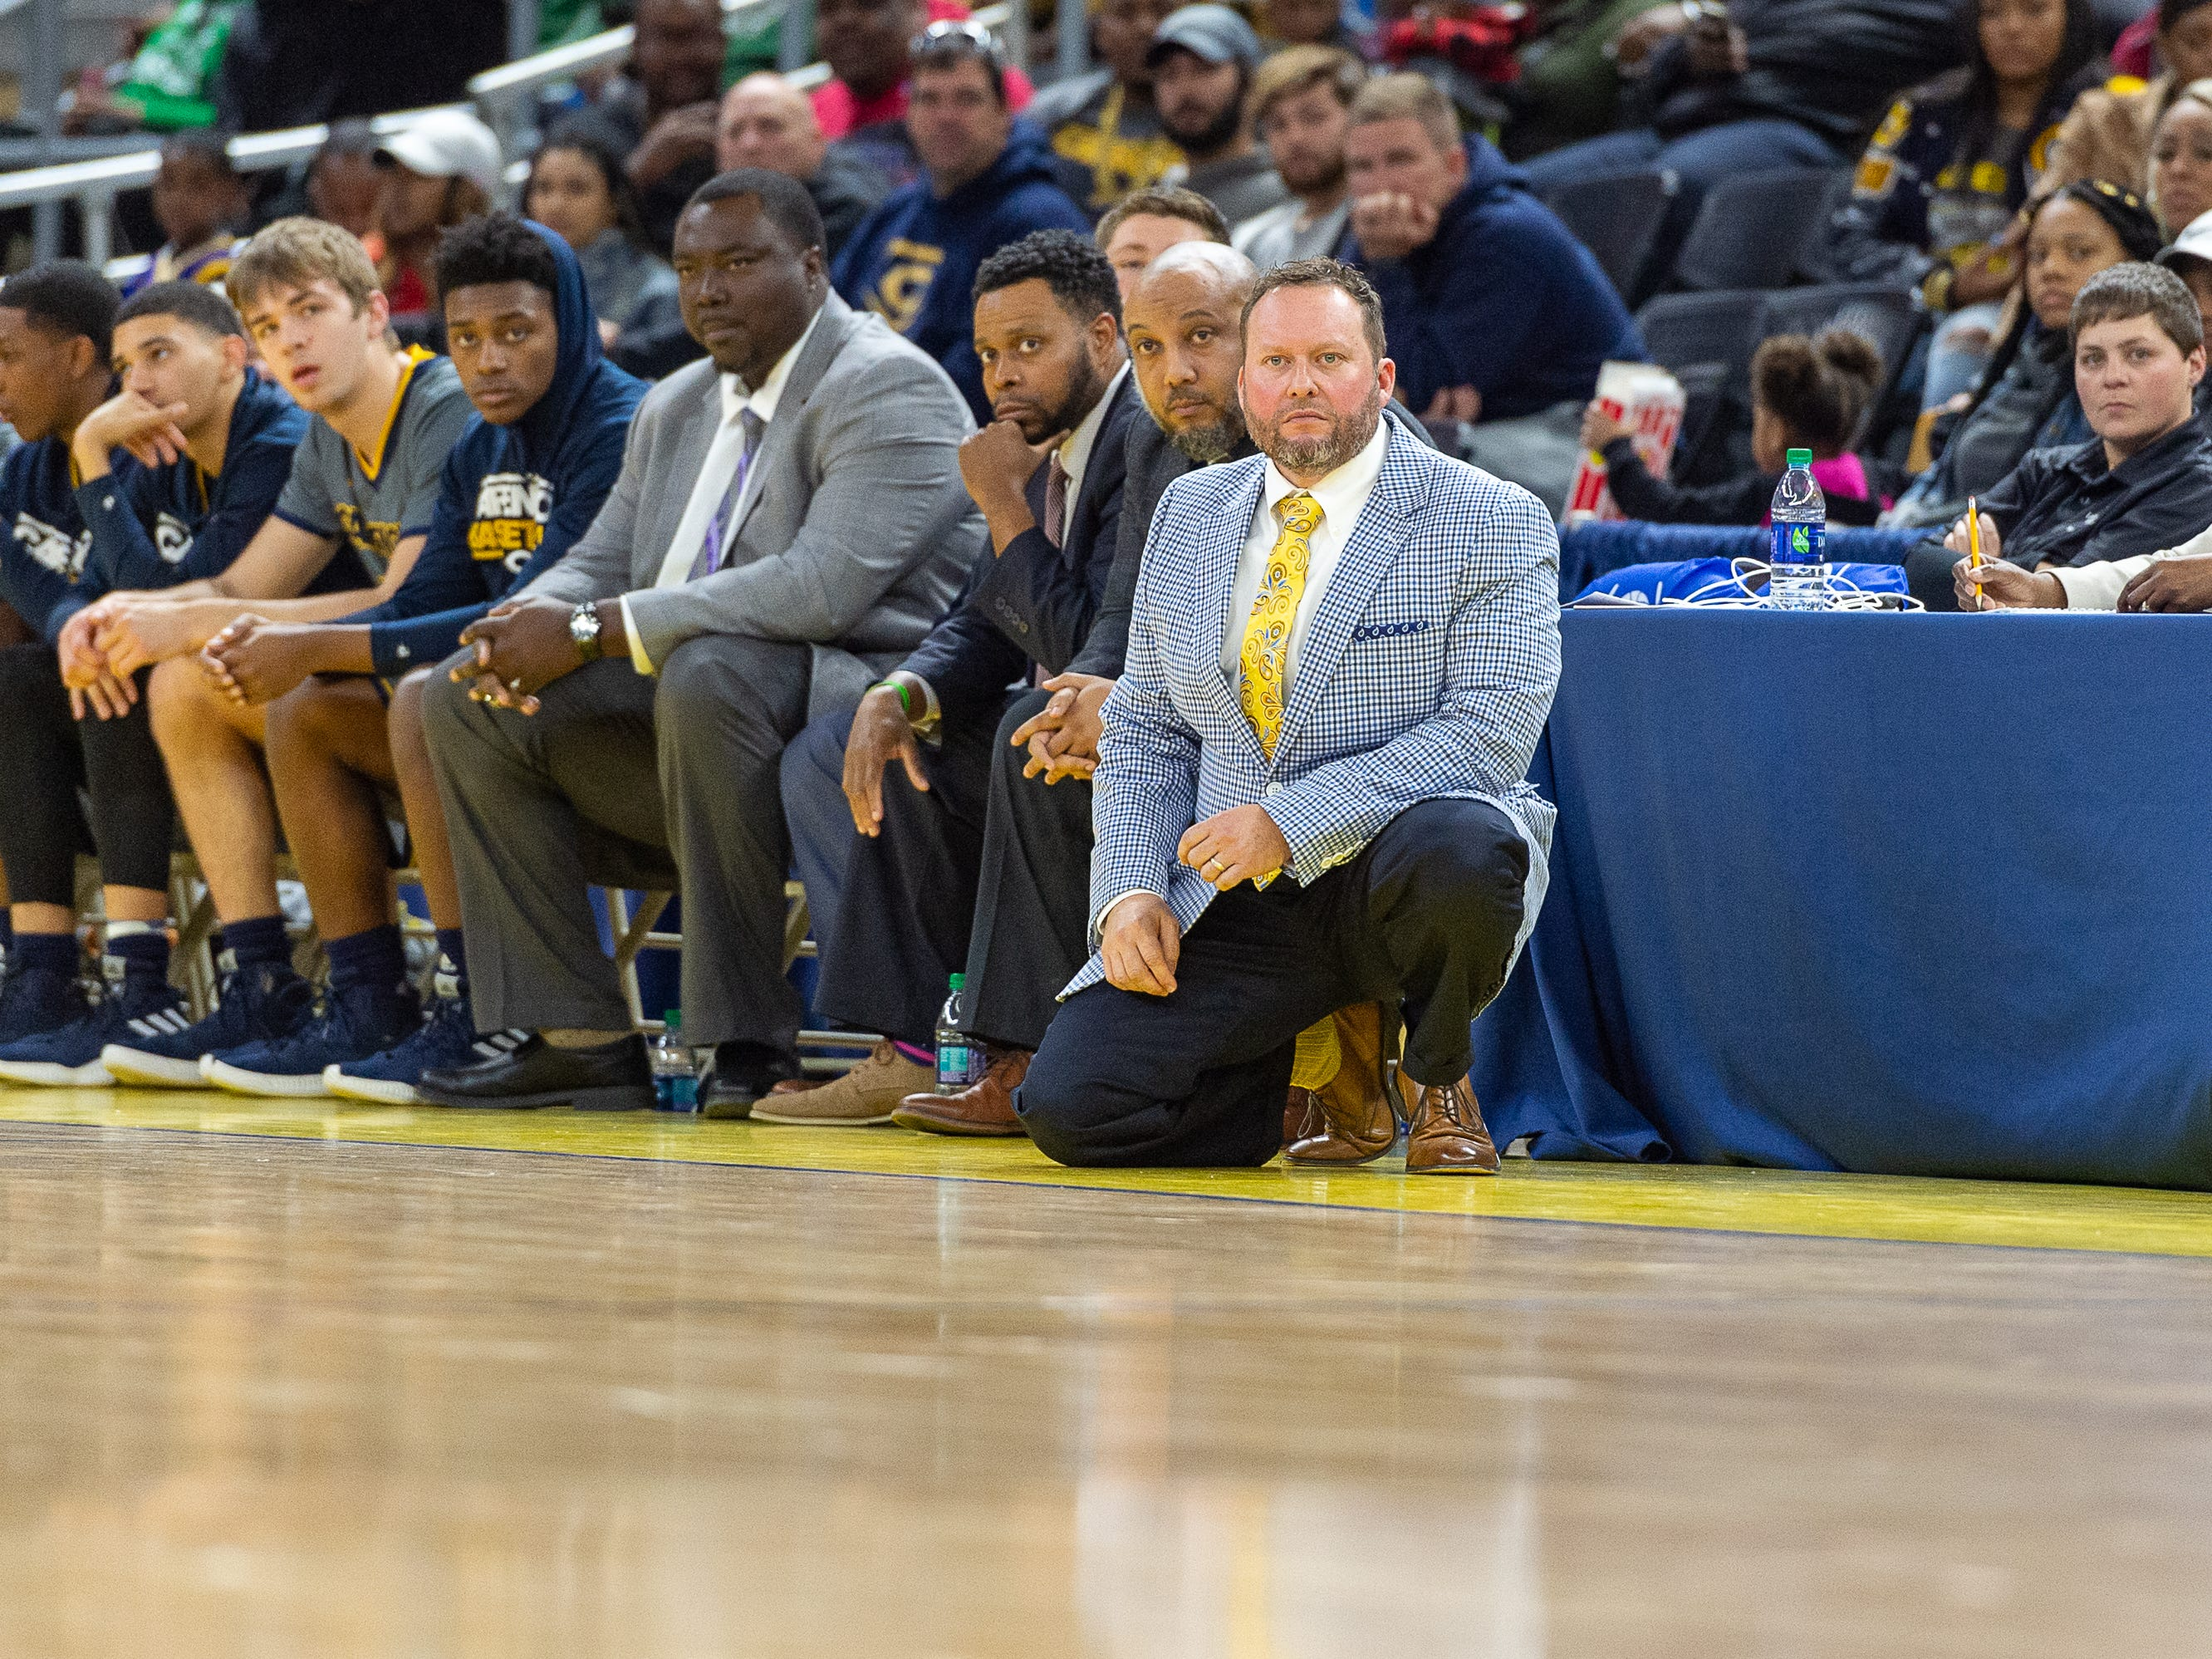 Head Coach Christopher Kovatch as Carencro falls to Bossier in the Semi Final round of the LHSAA State Championships. Tuesday, March 5, 2019.